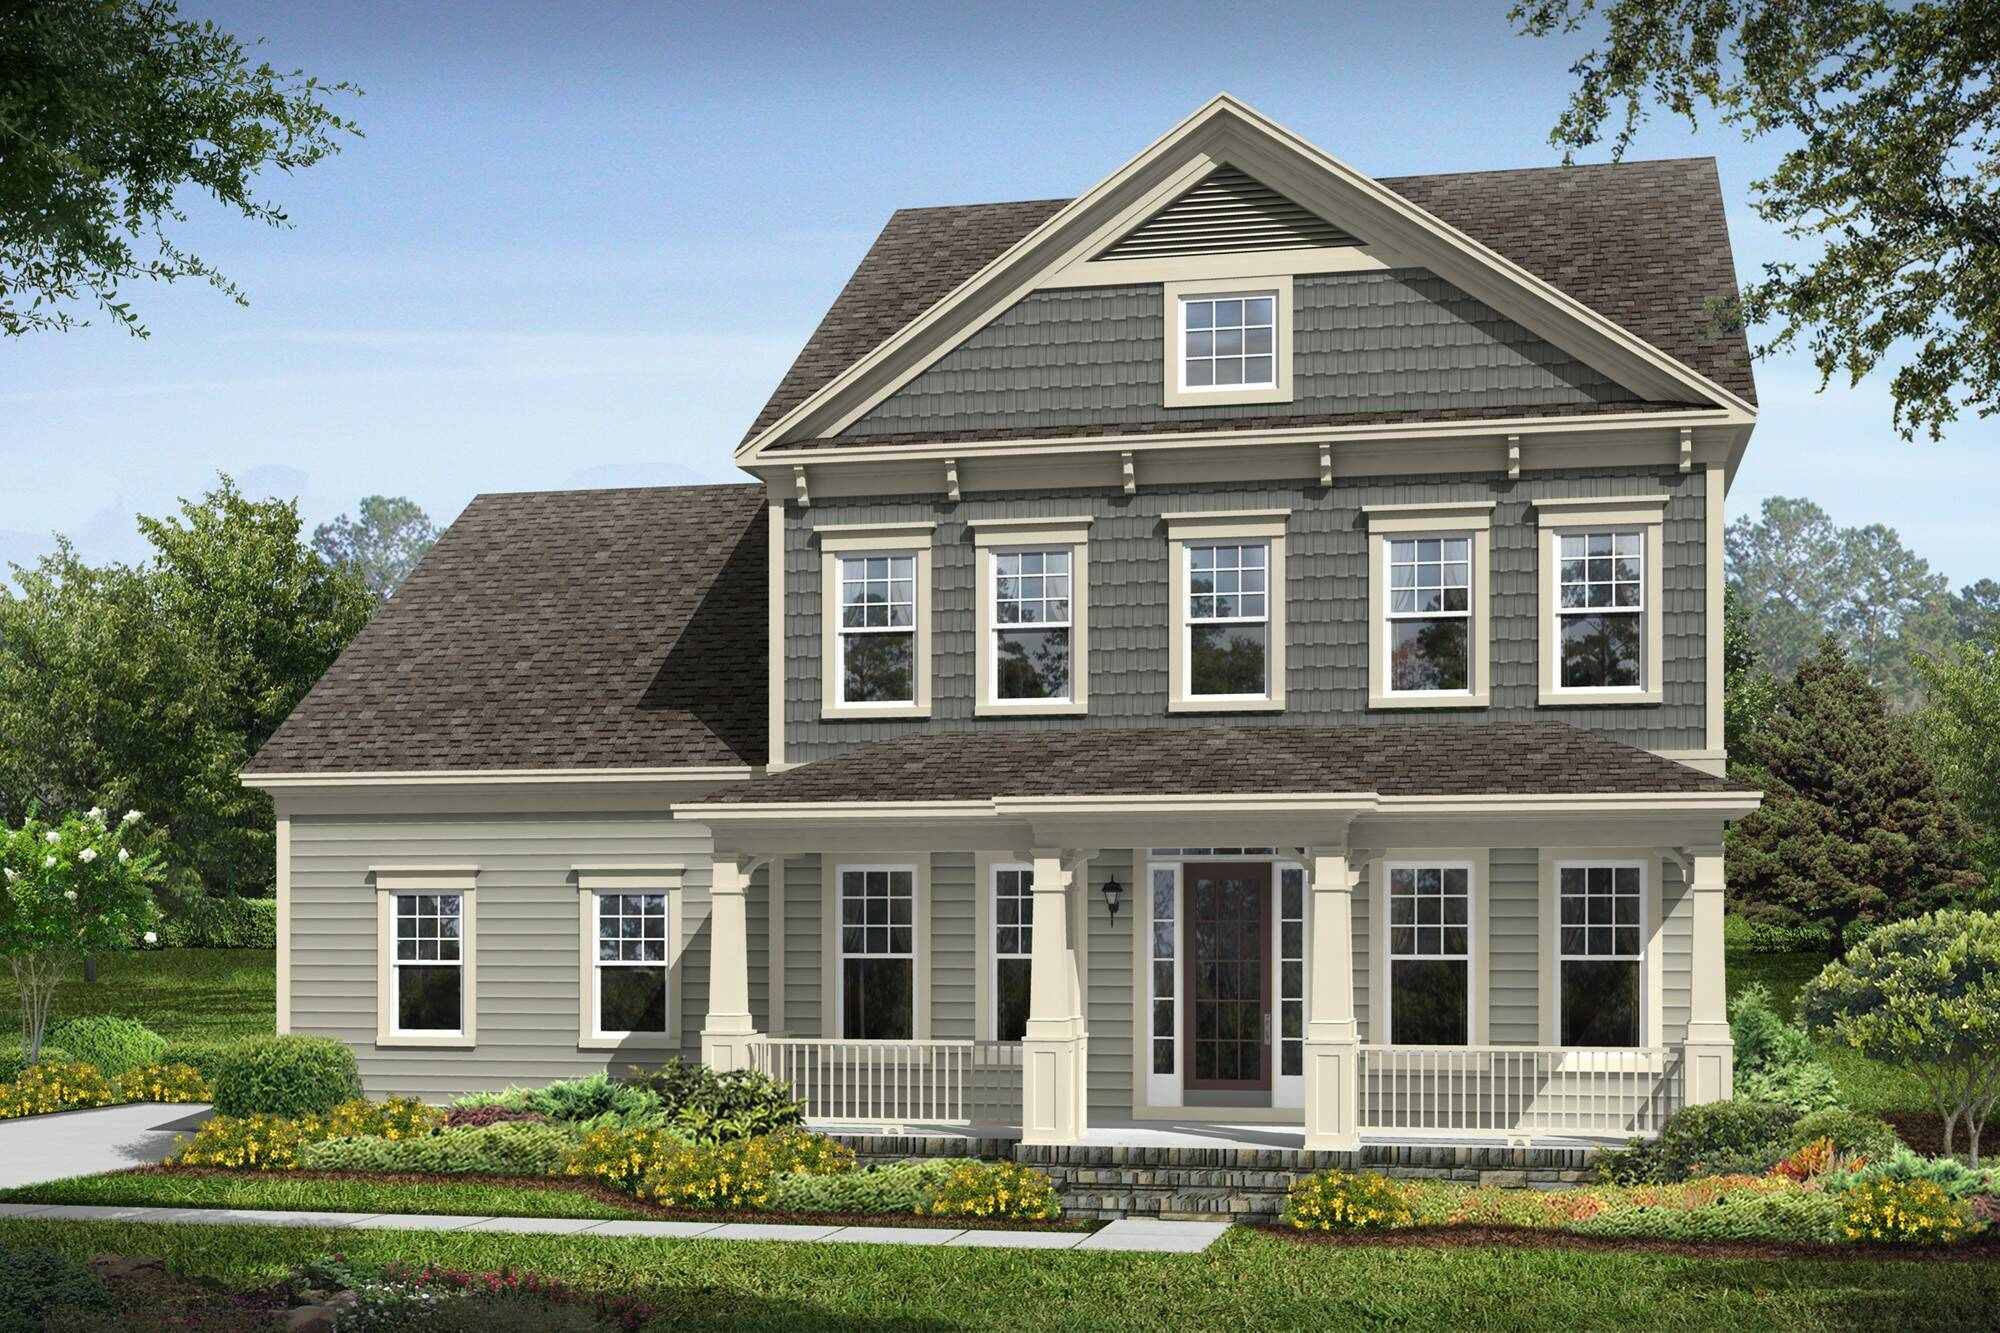 Woodbridge Home Exteriors - Residential Roofing Services Fairfax ...